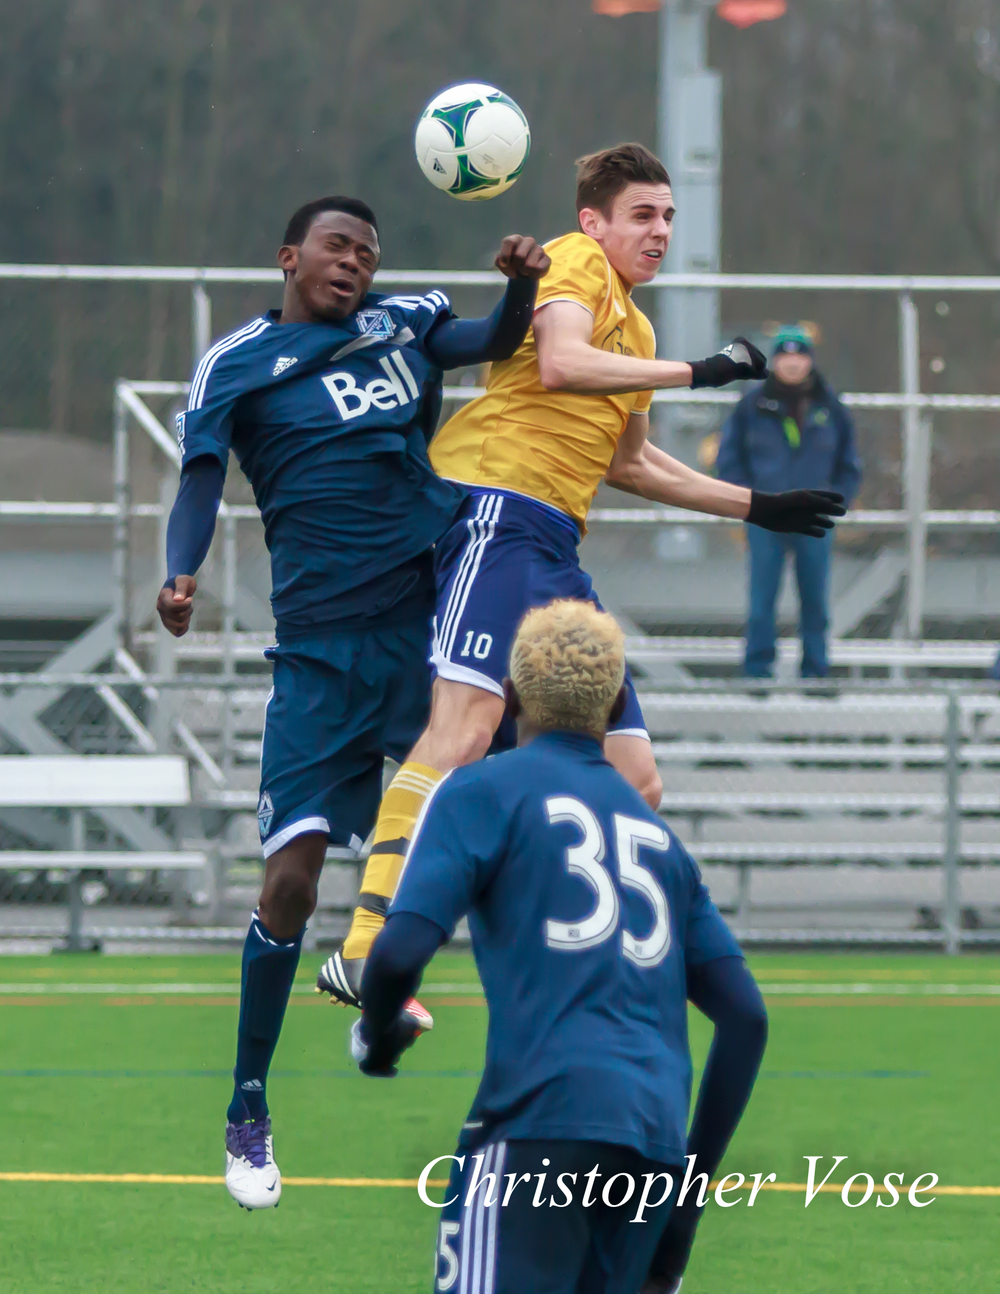 Aminu Abdallah and Brayden Gant battle for the ball at the Burnaby Lake Sports Complex on 11 February 2013.